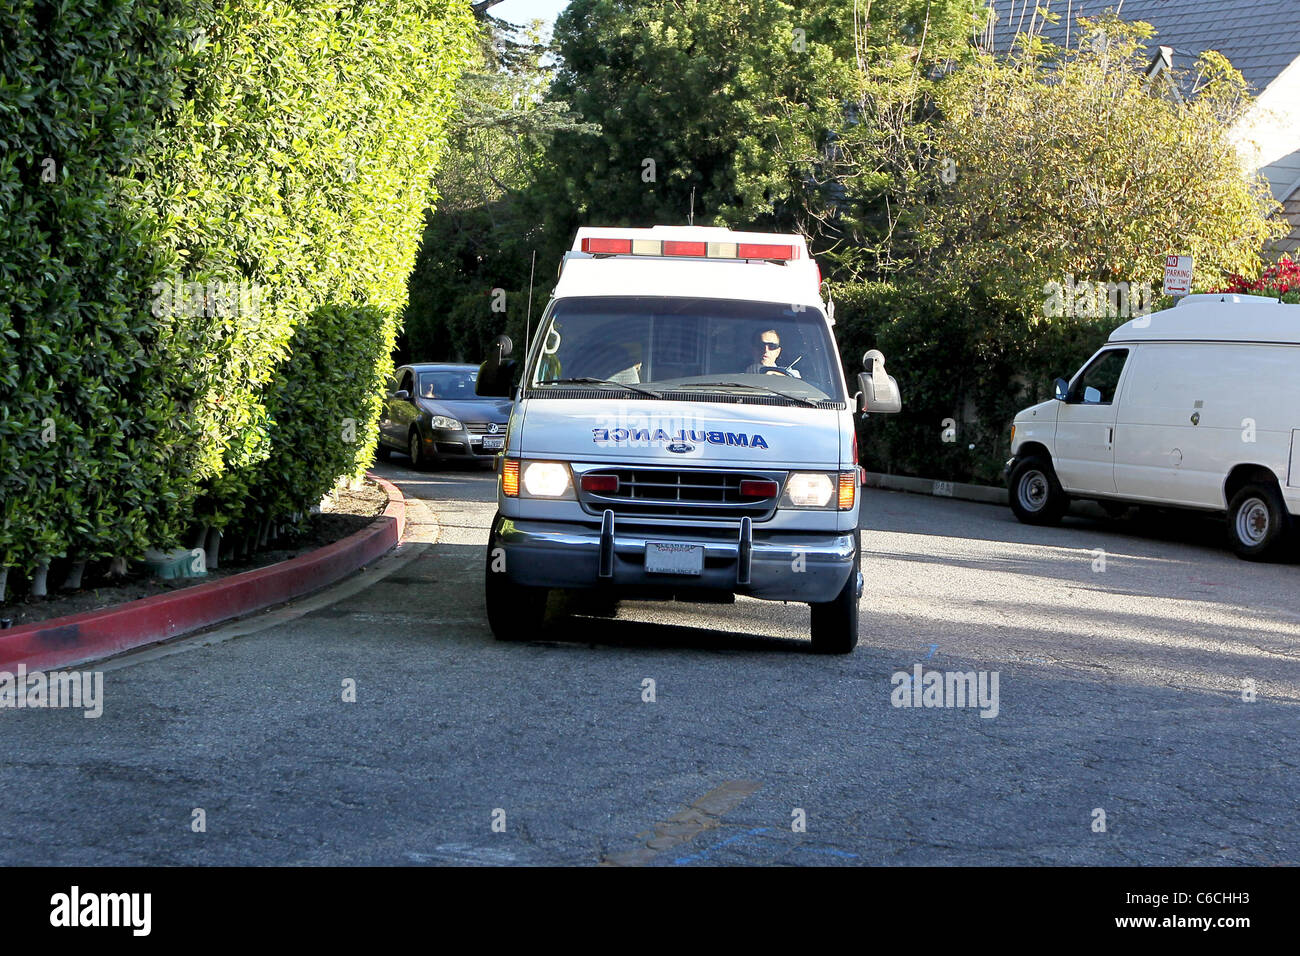 Ailing actress Zsa Zsa Gabor returning home in an ambulance Zsa Zsa Gabor has left a hospital in Los Angeles after Stock Photo